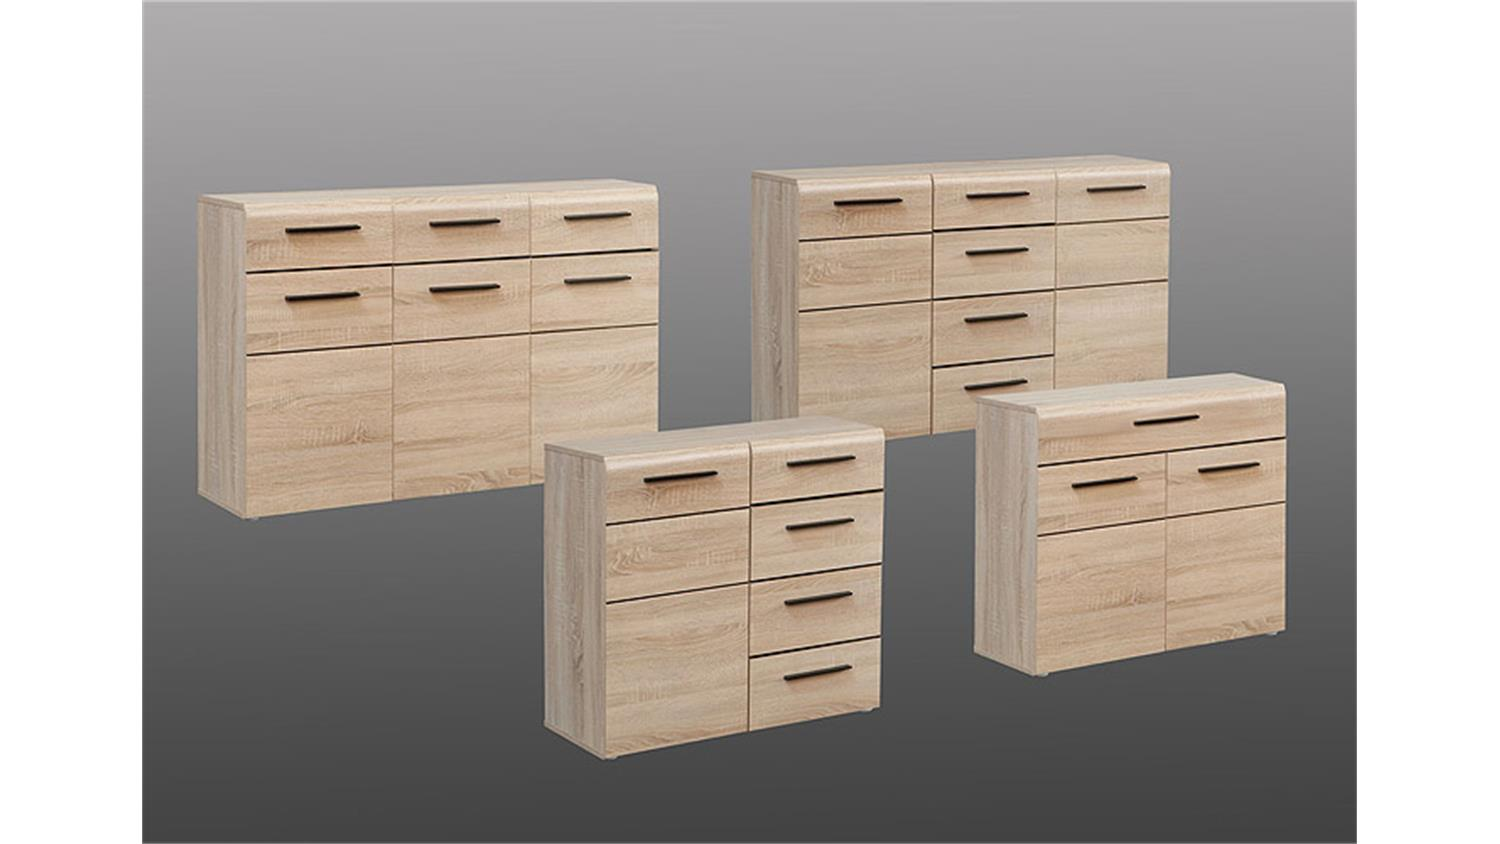 kommode 2 combino sonoma denver eiche wenge. Black Bedroom Furniture Sets. Home Design Ideas